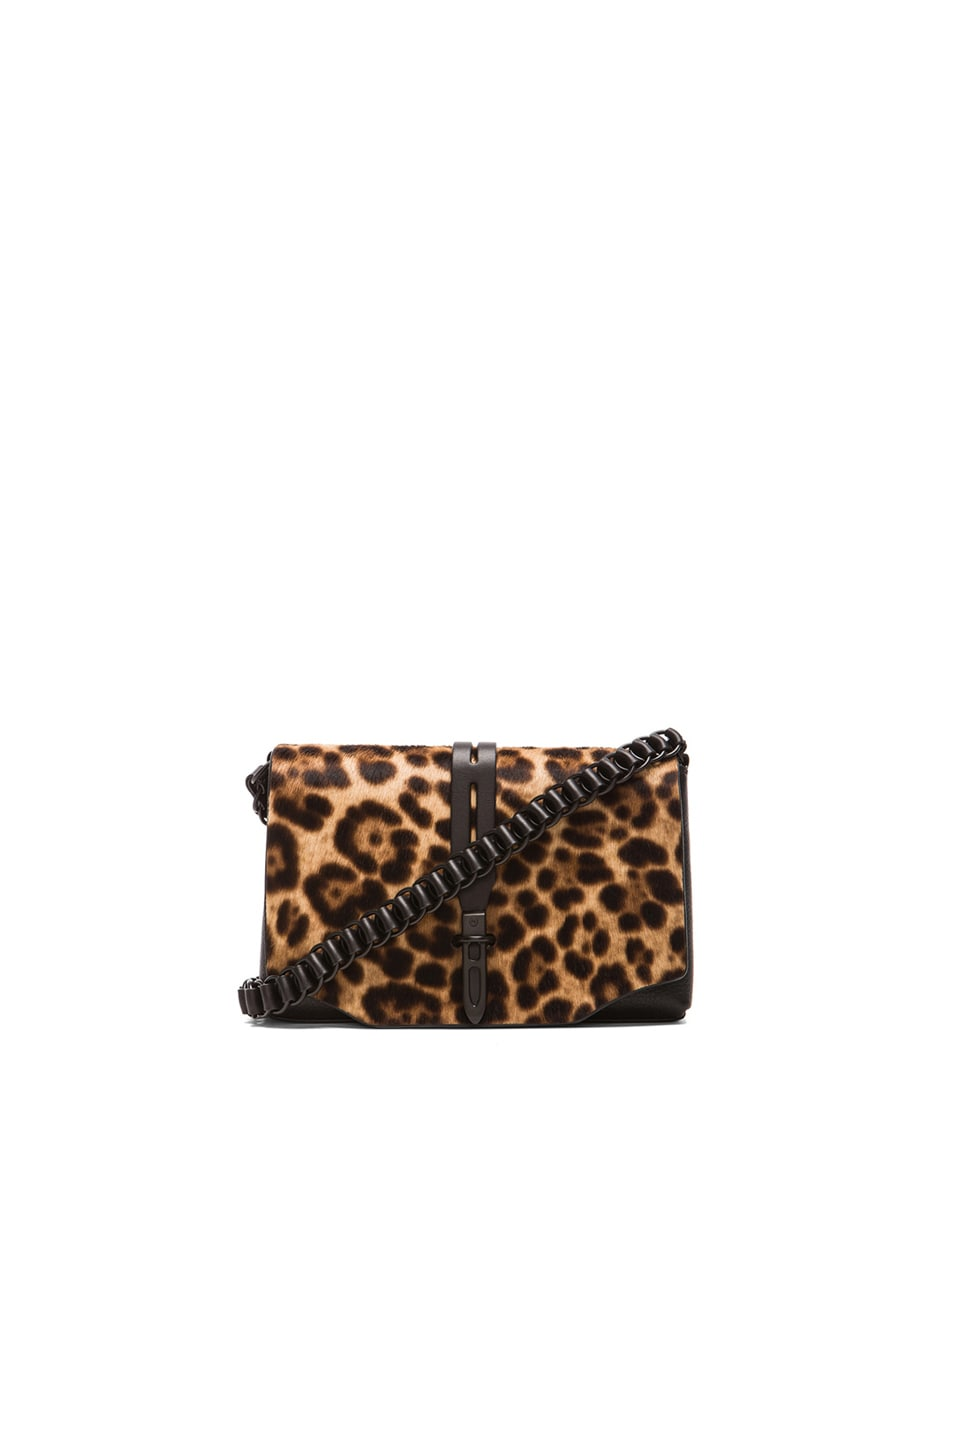 Image 1 of Rag & Bone Enfield Mini Bag in Leopard